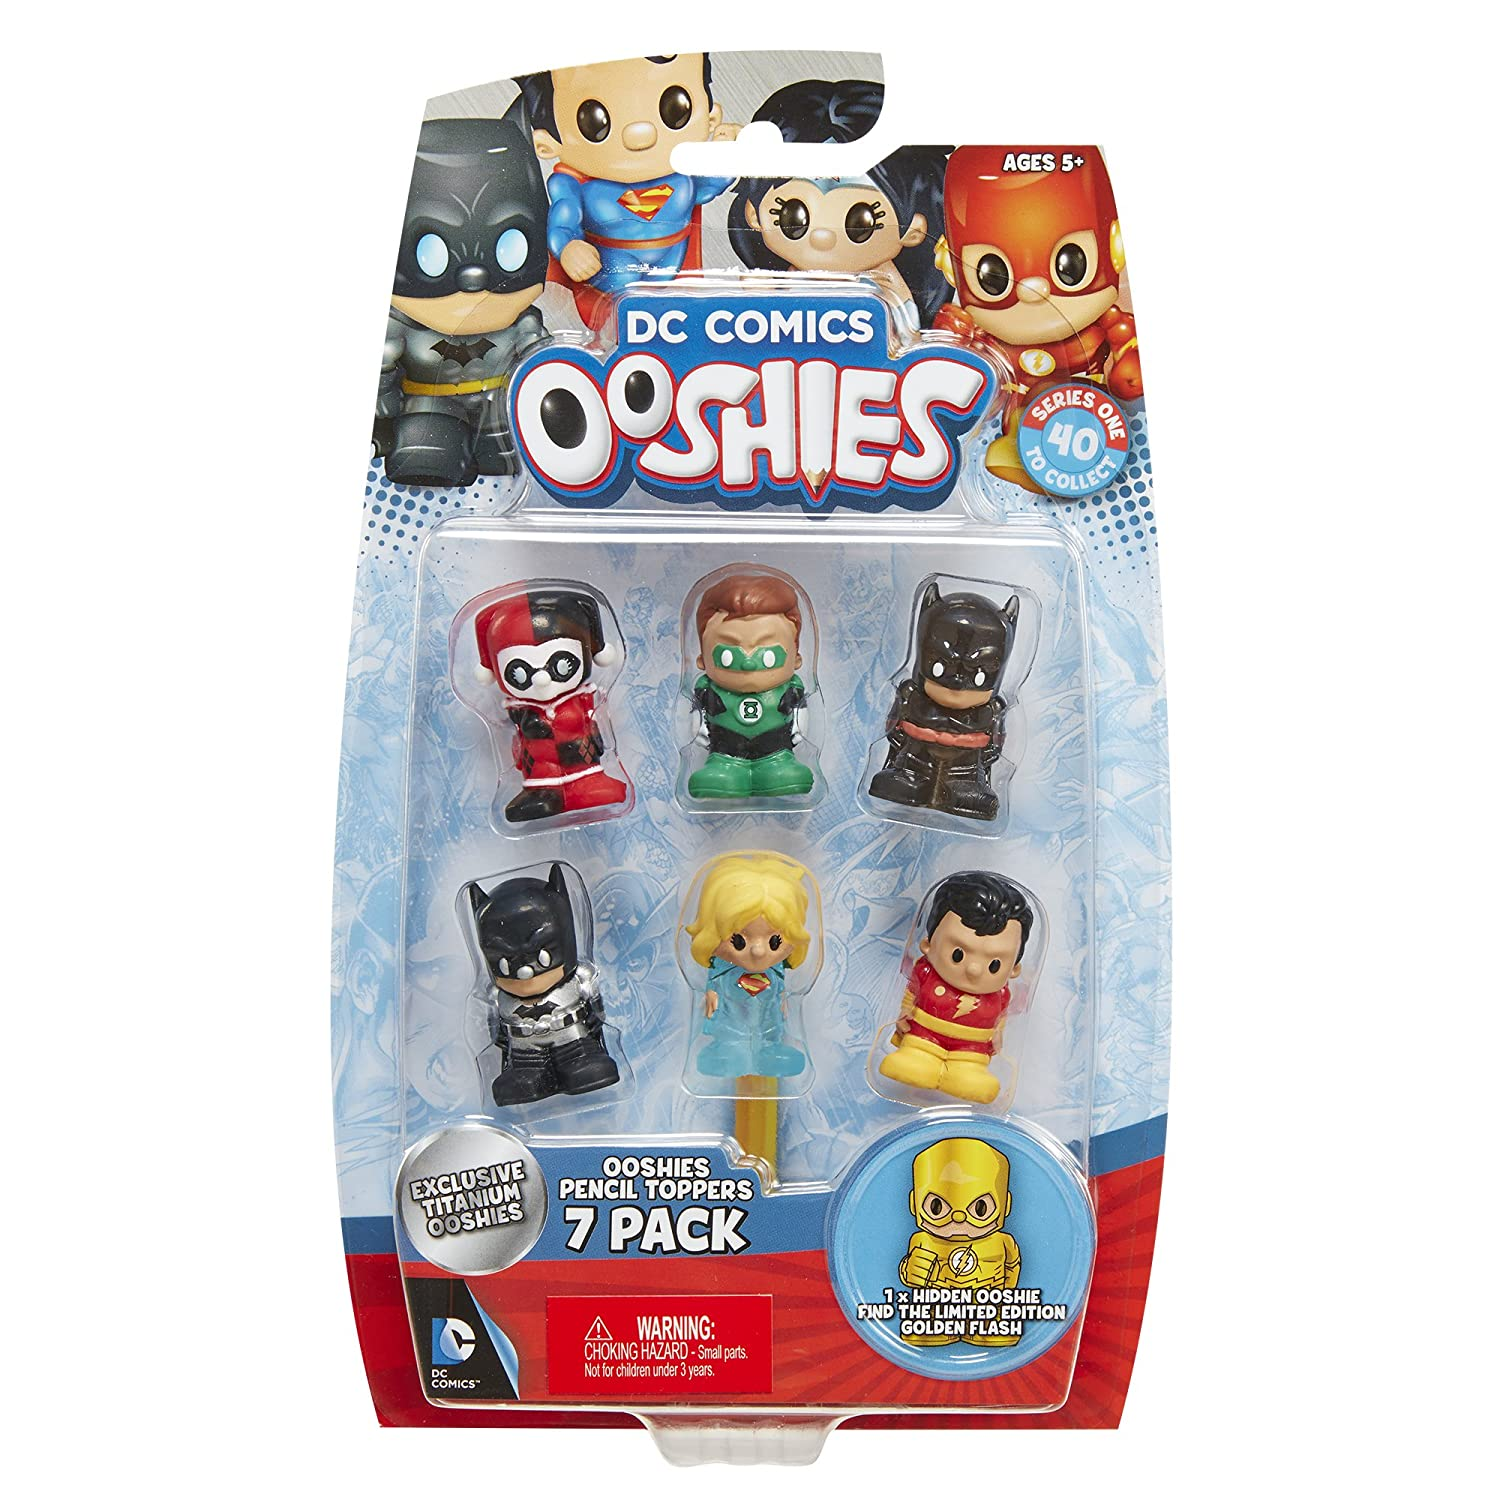 Ooshies Set 1 DC Comics Series Series Series 1 Action Figure (7 Pack) a19416